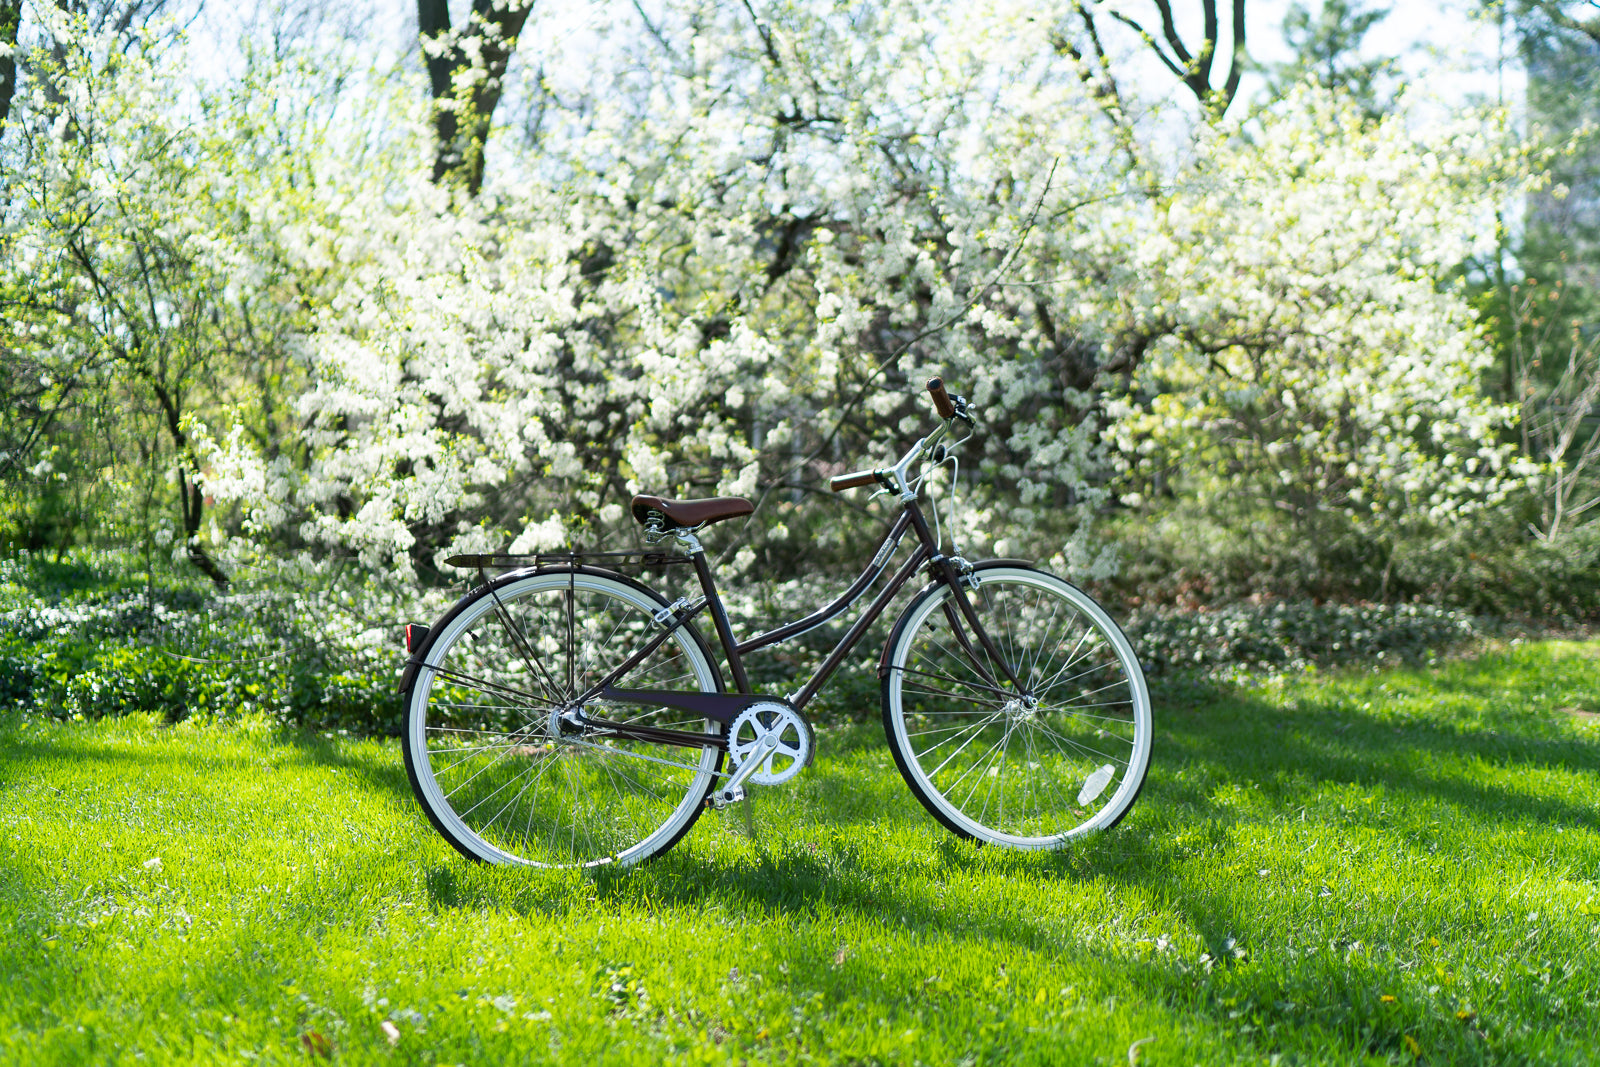 Best Bikes for Casual Riding